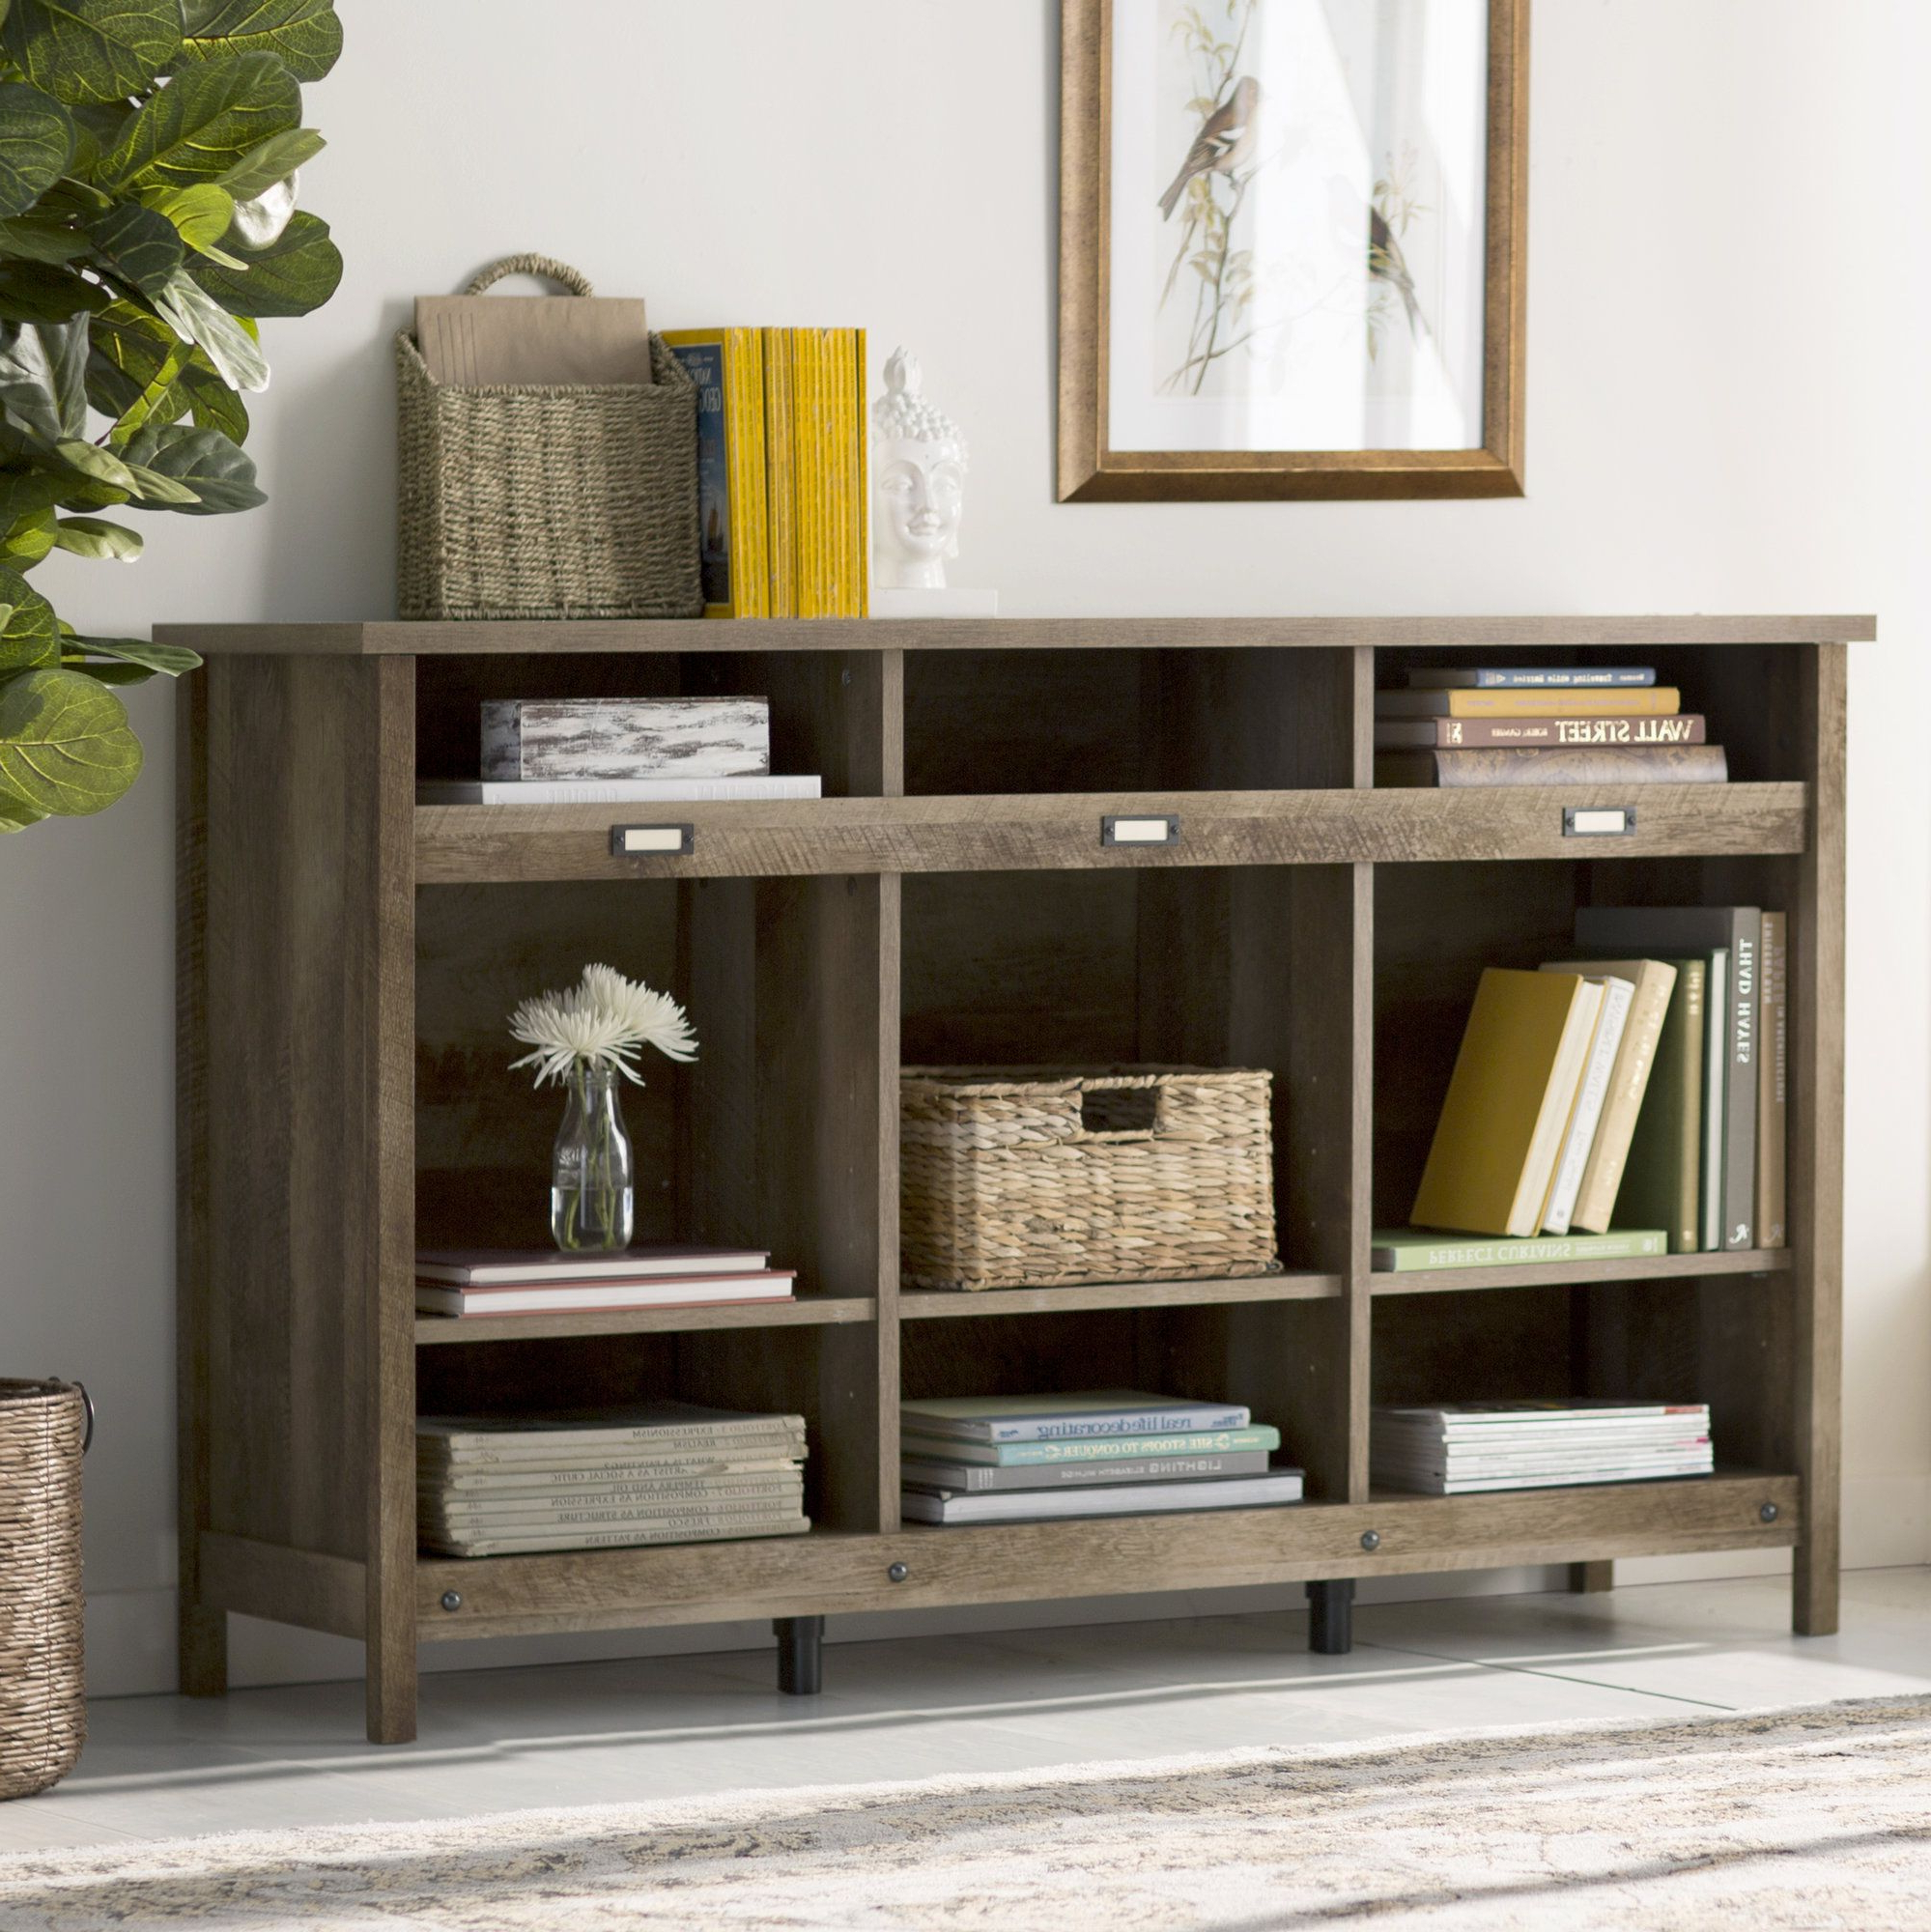 """Well Liked Brockton 36"""" Cube Unit Bookcase (View 19 of 20)"""